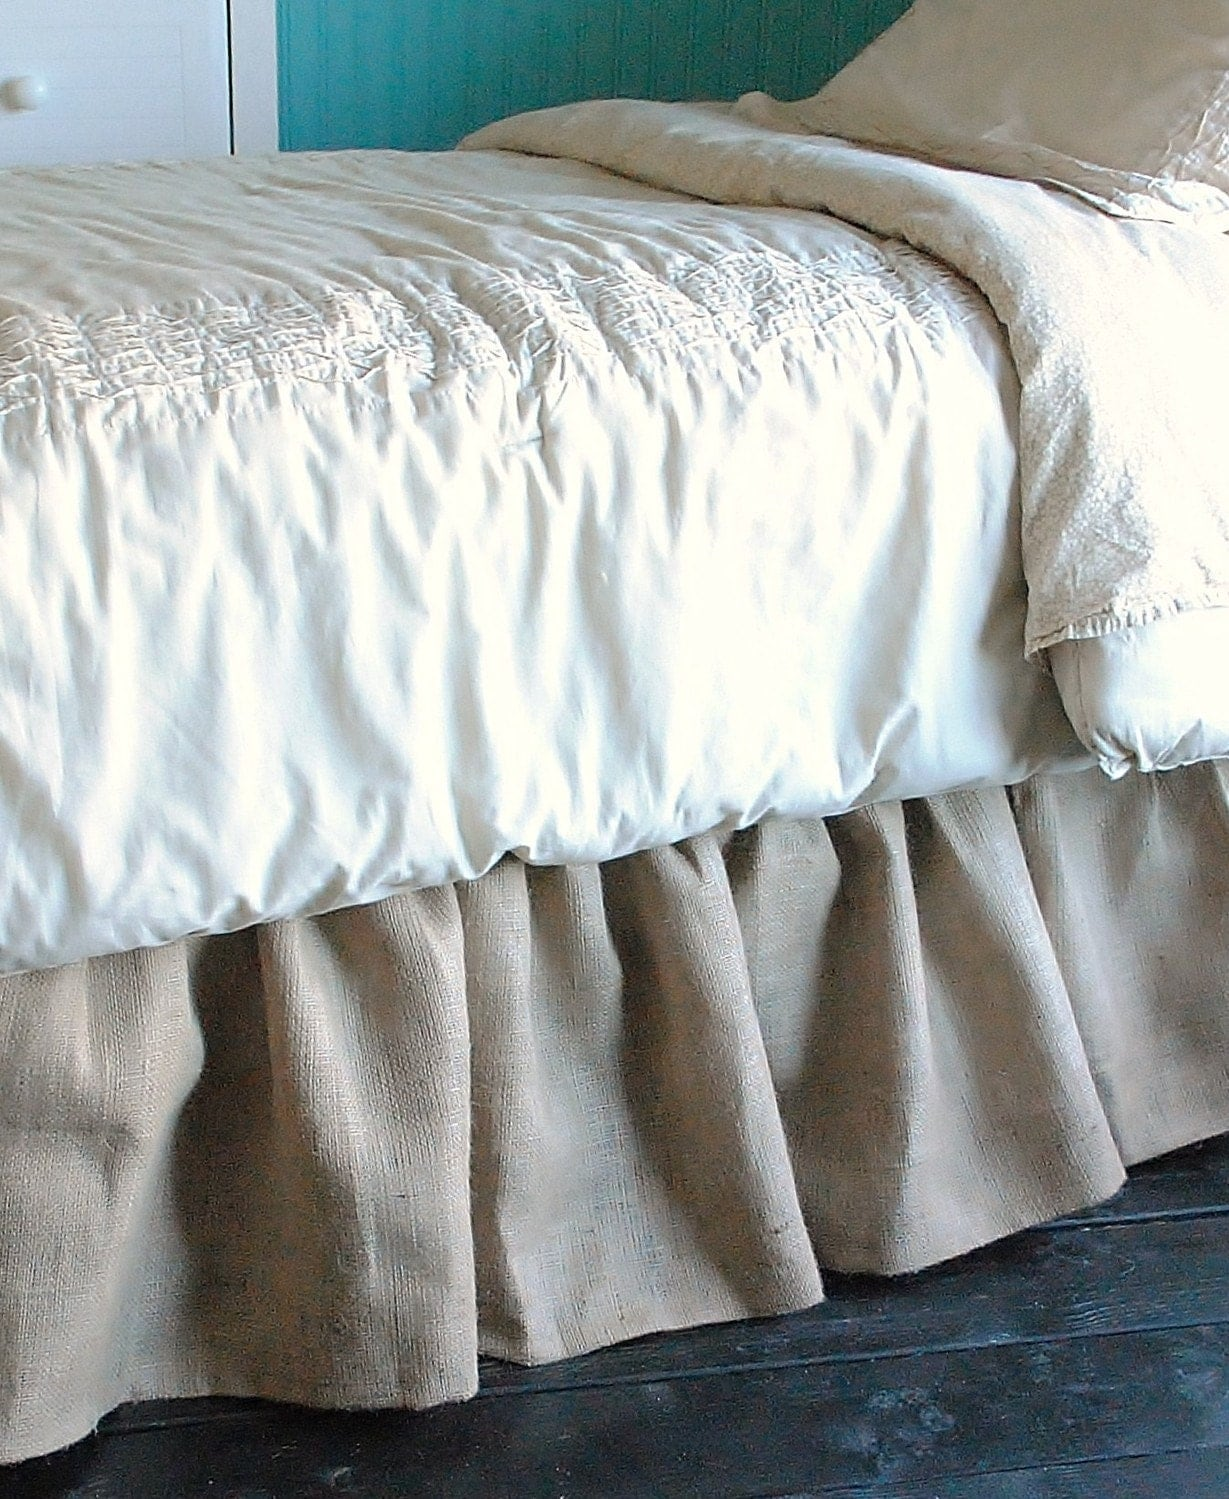 Bed Skirts Queen. Give your bed added flair with the addition of a bed skirt. We've got must-have styles in bed skirts for queen-size beds. From sleek solid colors to coordinating prints, build your bedroom sanctuary by shopping our bedding collections for this sophisticated accent.